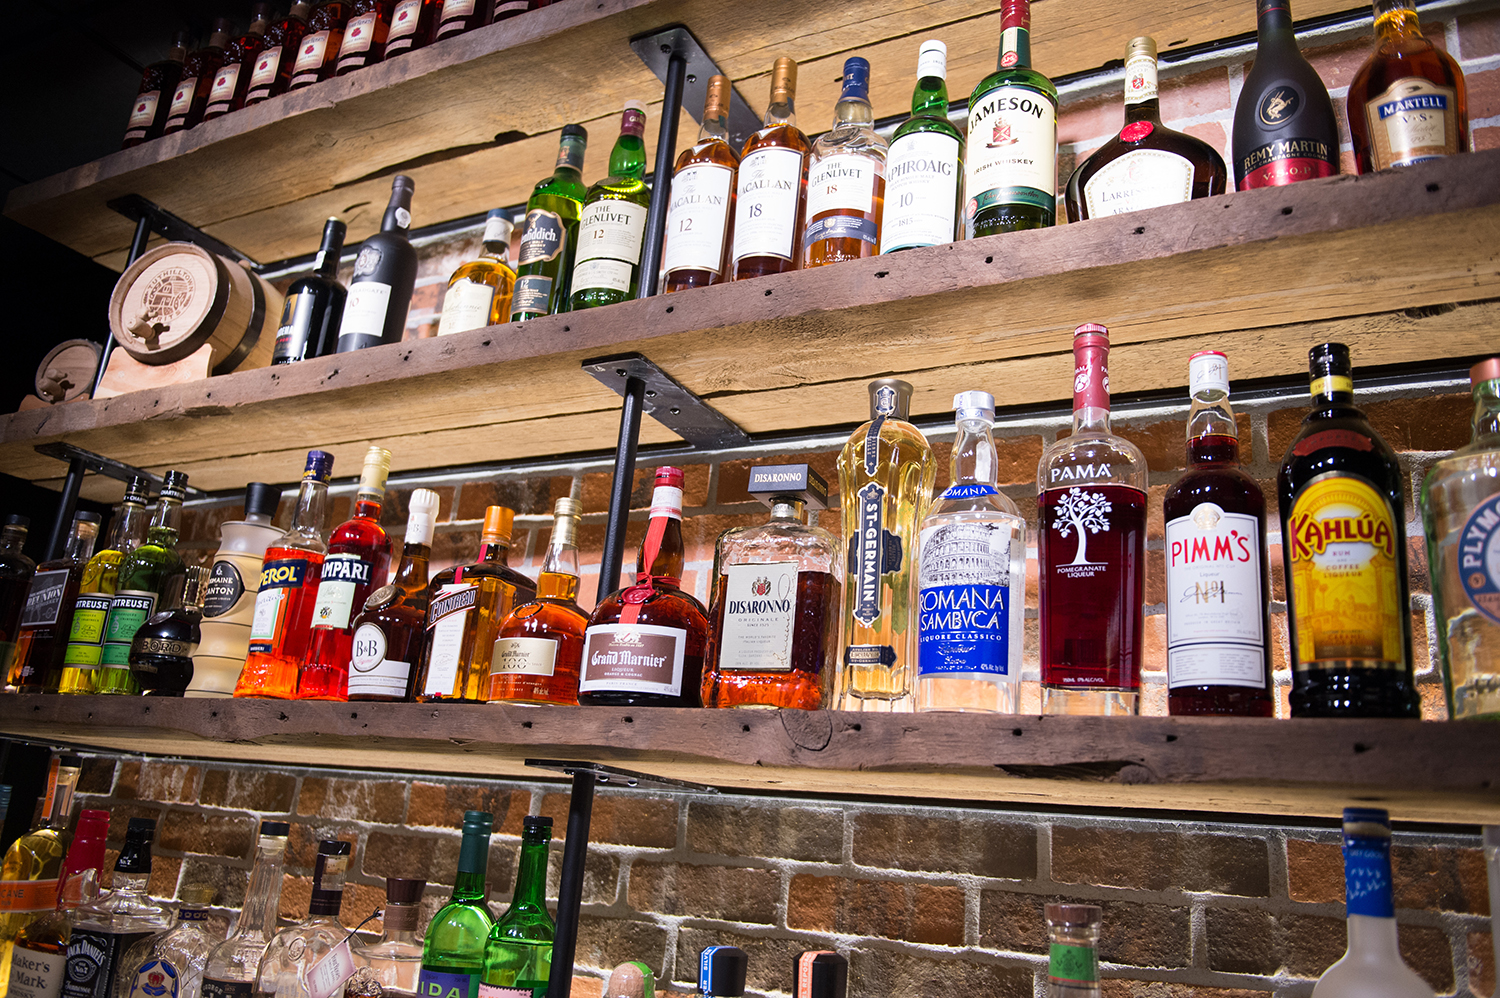 Over 100 liquor selections